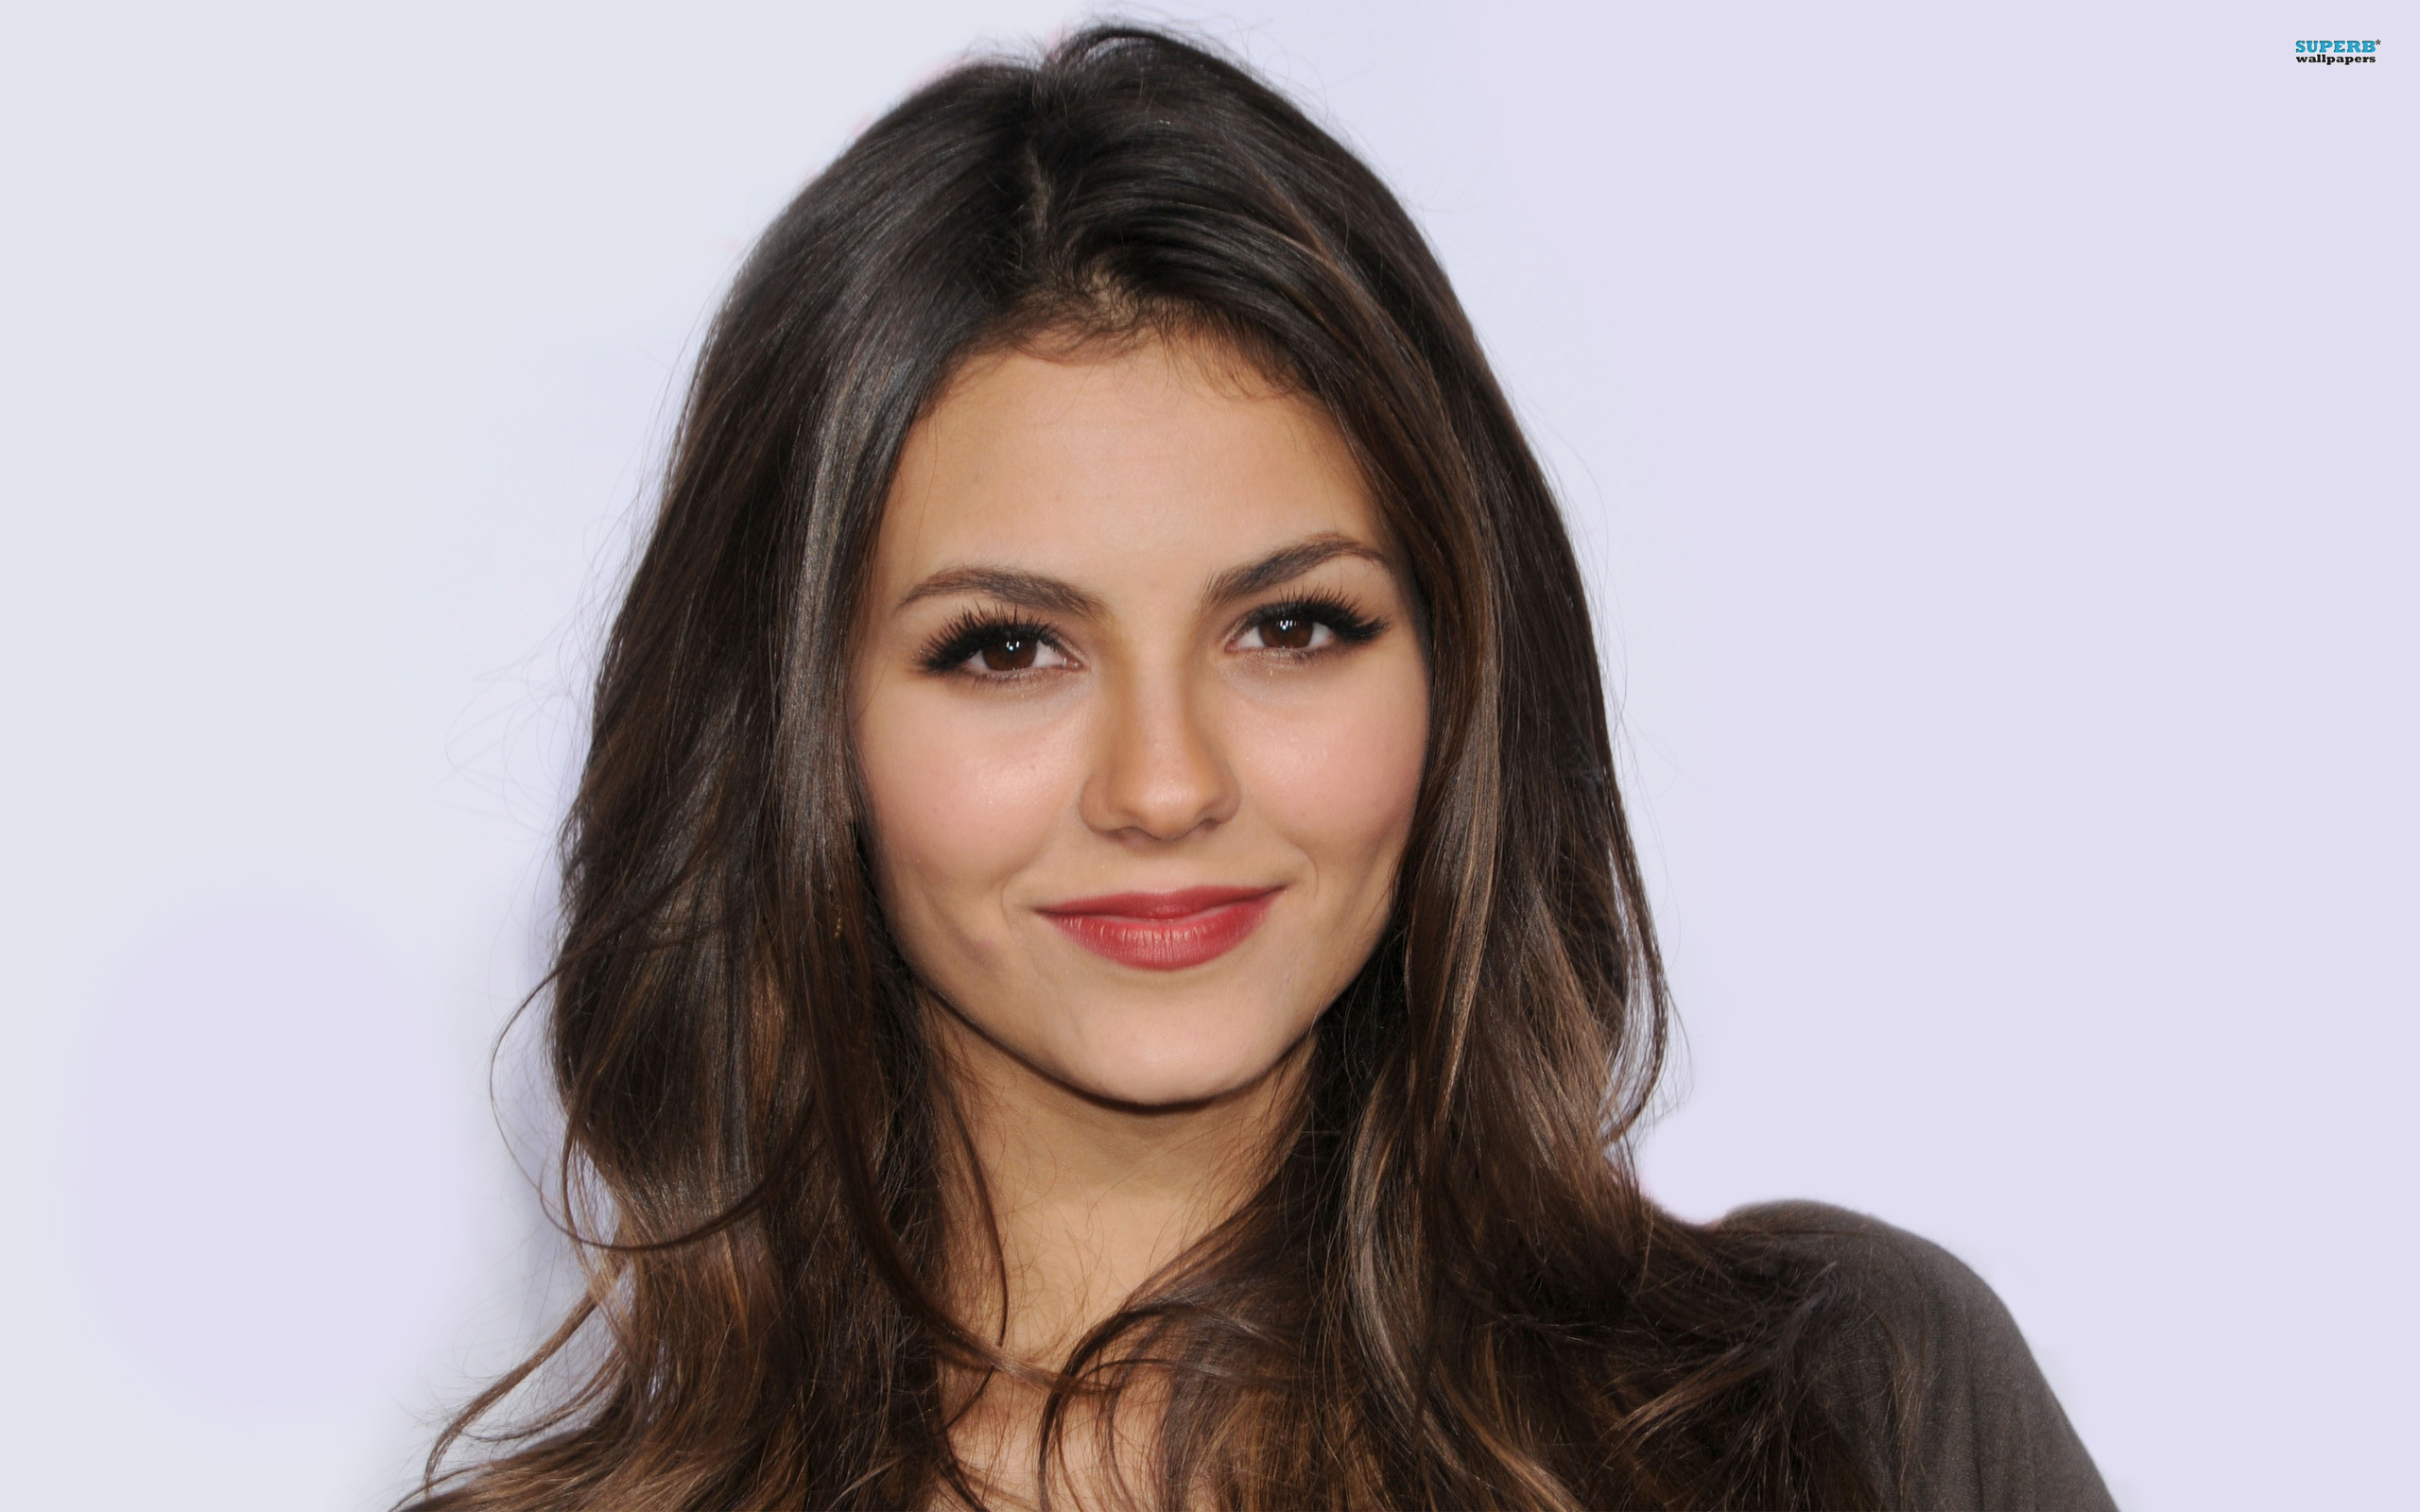 Victoria Justice Wallpaper HD Pictures 2013 2560x1600 pixel Popular 2560x1600